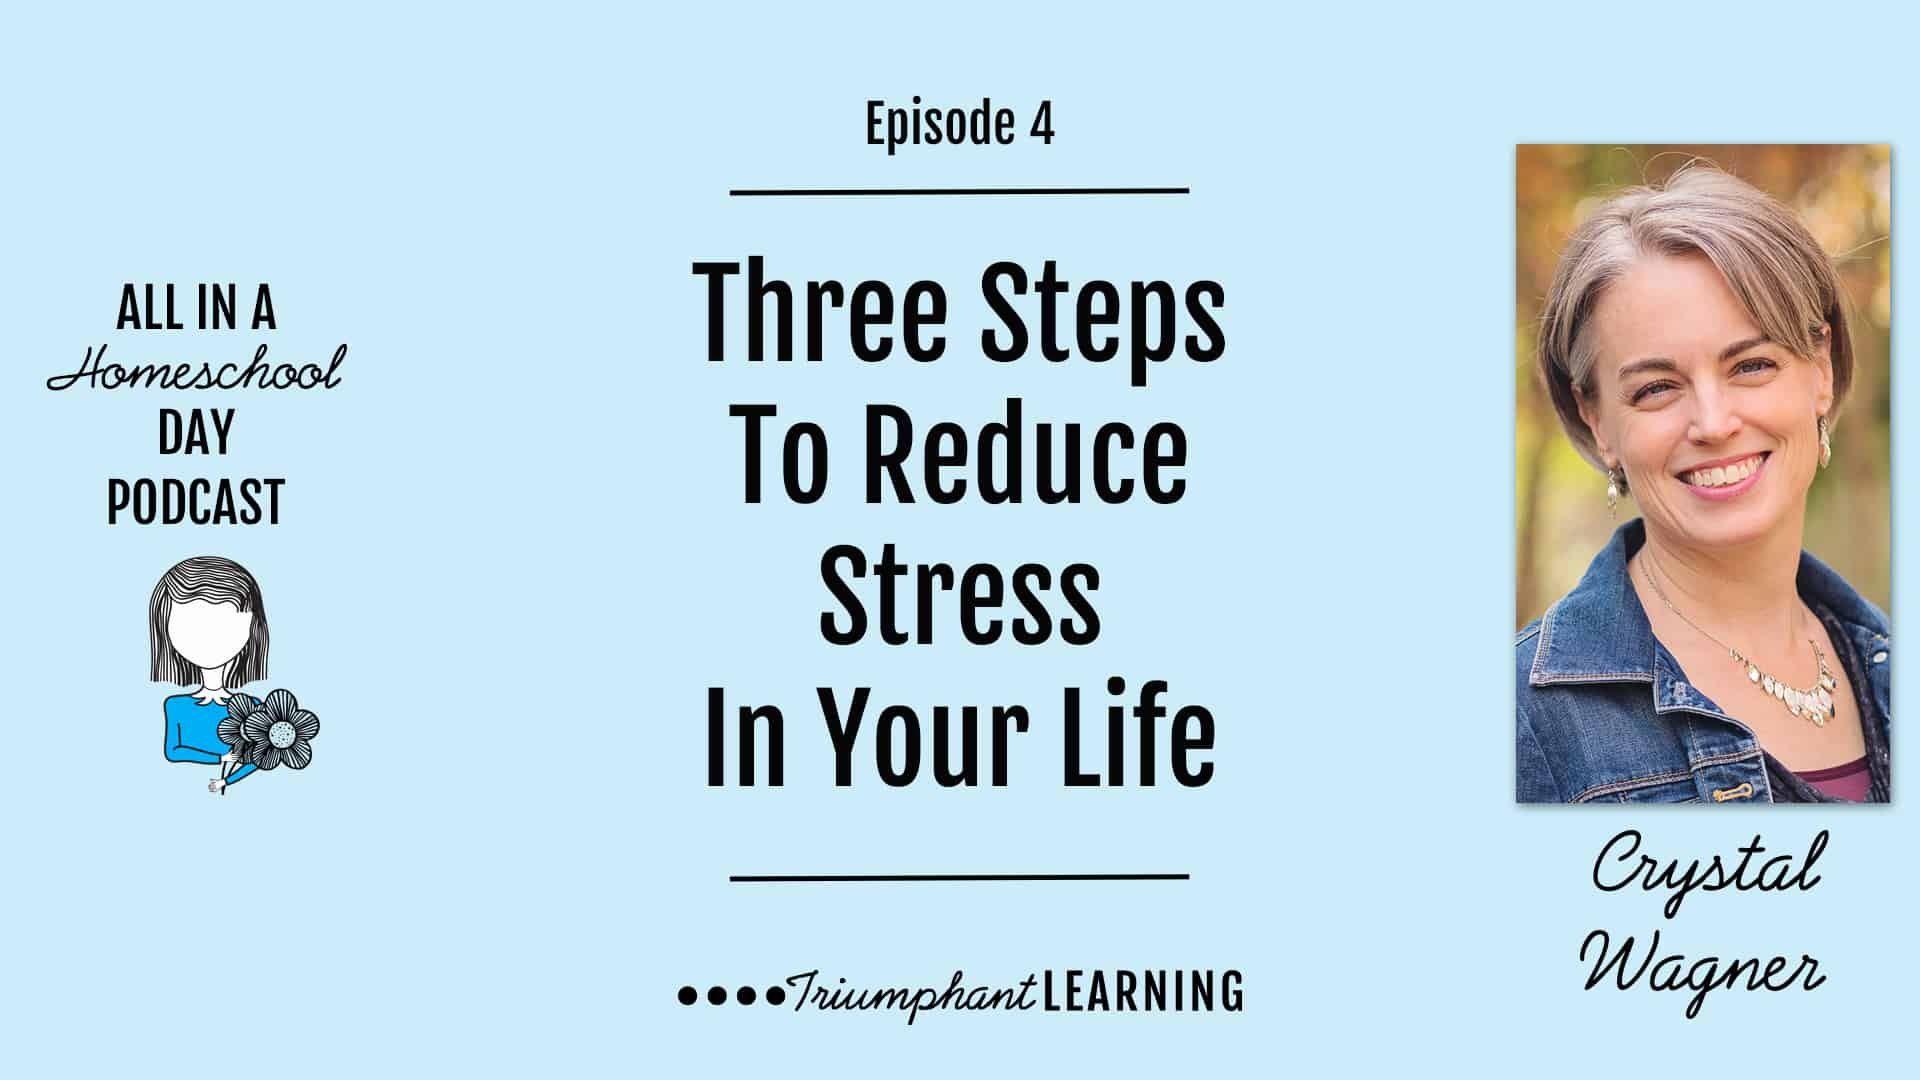 Learning how to eliminate, automate, and delegate your responsibilities can reduce your stress and help you accomplish more each day. This is important as a homeschool mom with many demands on your time. In this episode, we will explore what you can eliminate, automate, and delegate as a household manager and homeschool teacher.